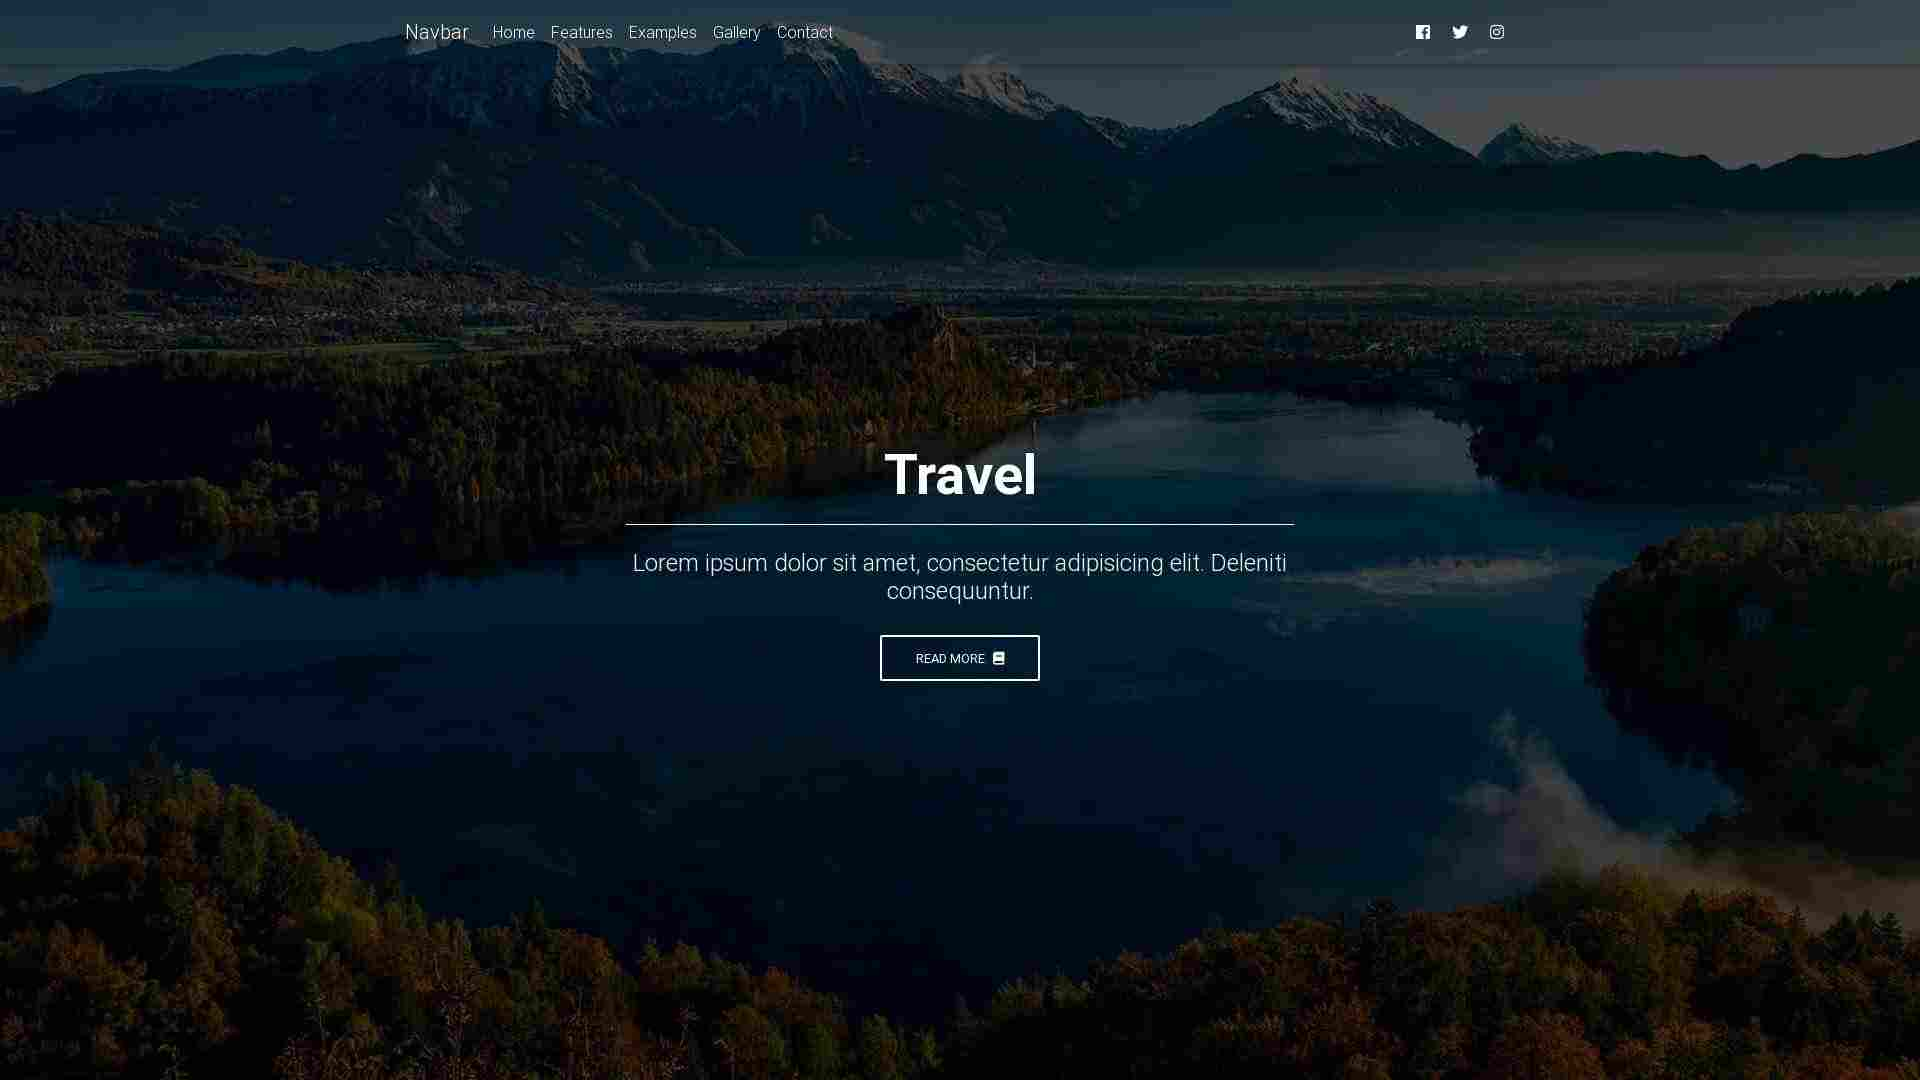 Forked from - Forked from - Forked from - Forked from - Forked from - Bootstrap Tutorial: Landing page – lesson 10